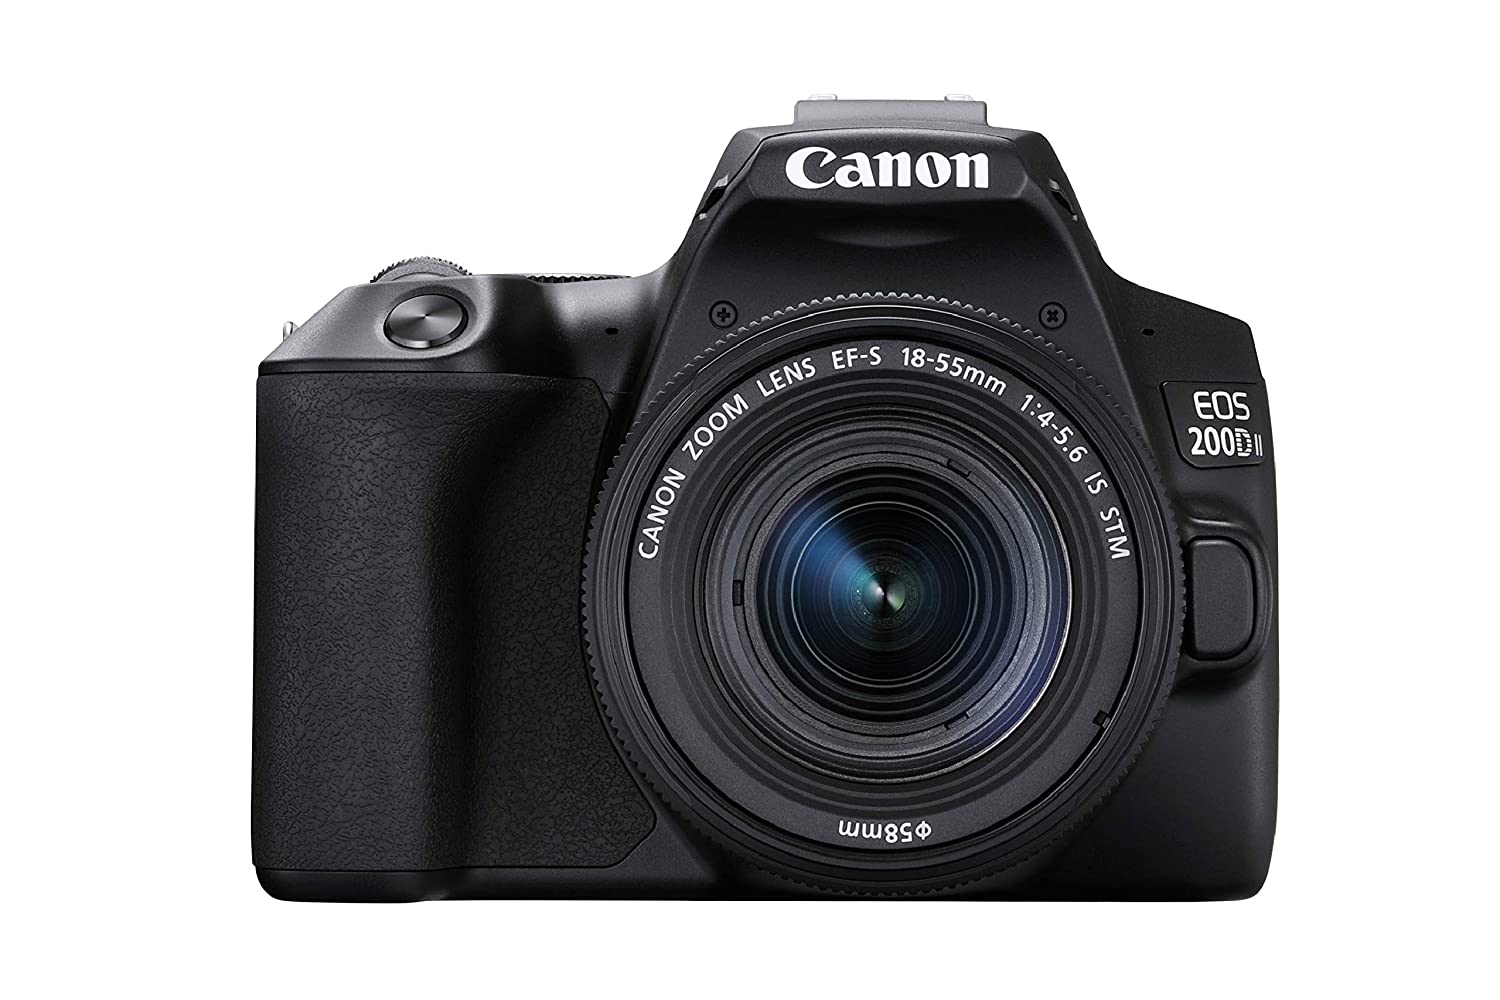 Buy Canon 200D II at lowest price online